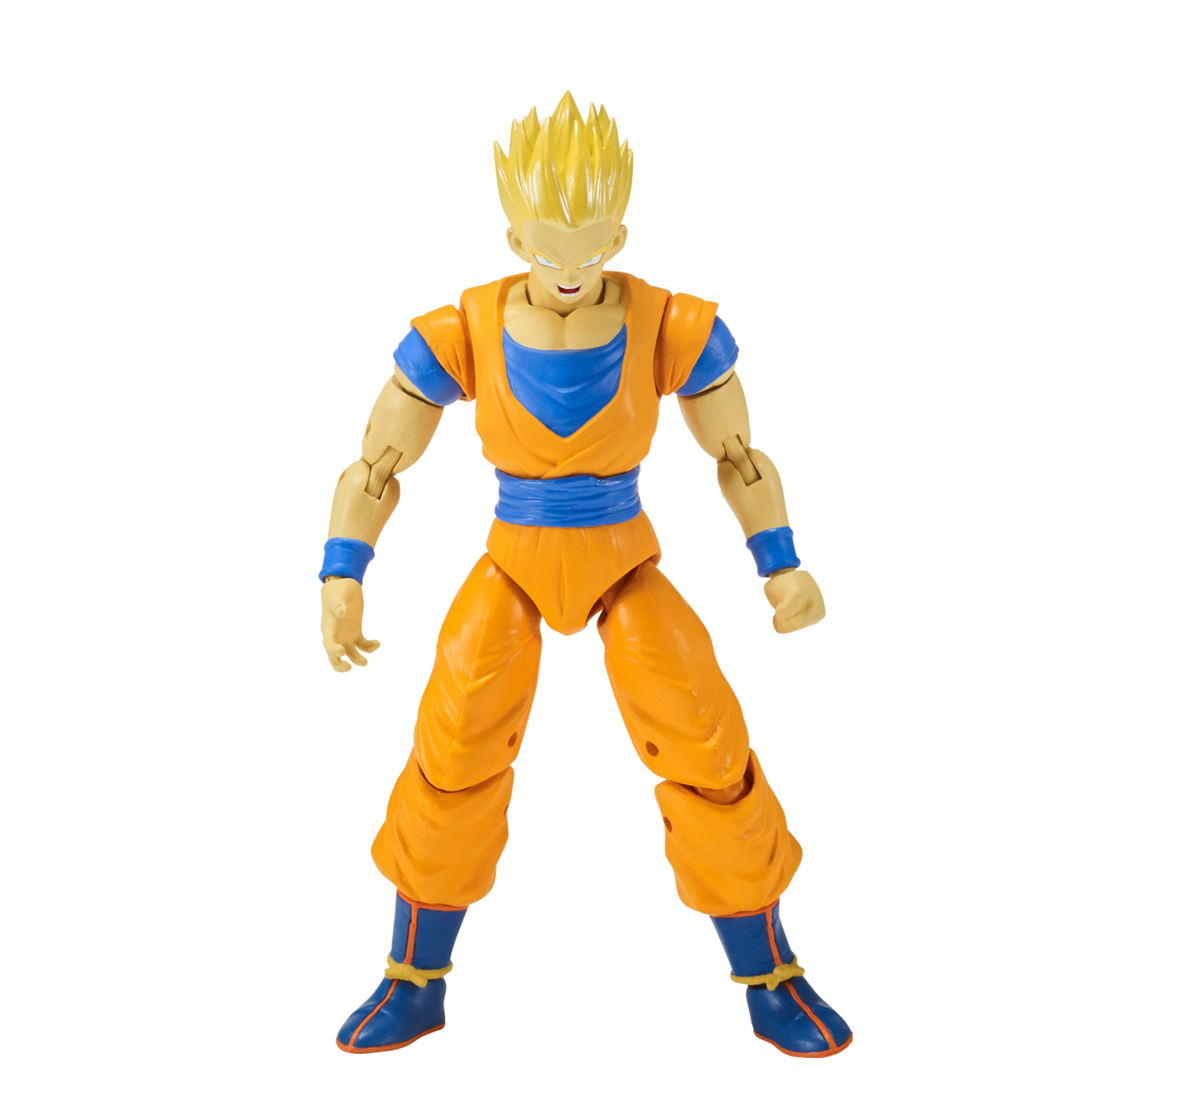 Dragon Ball figura legendaria